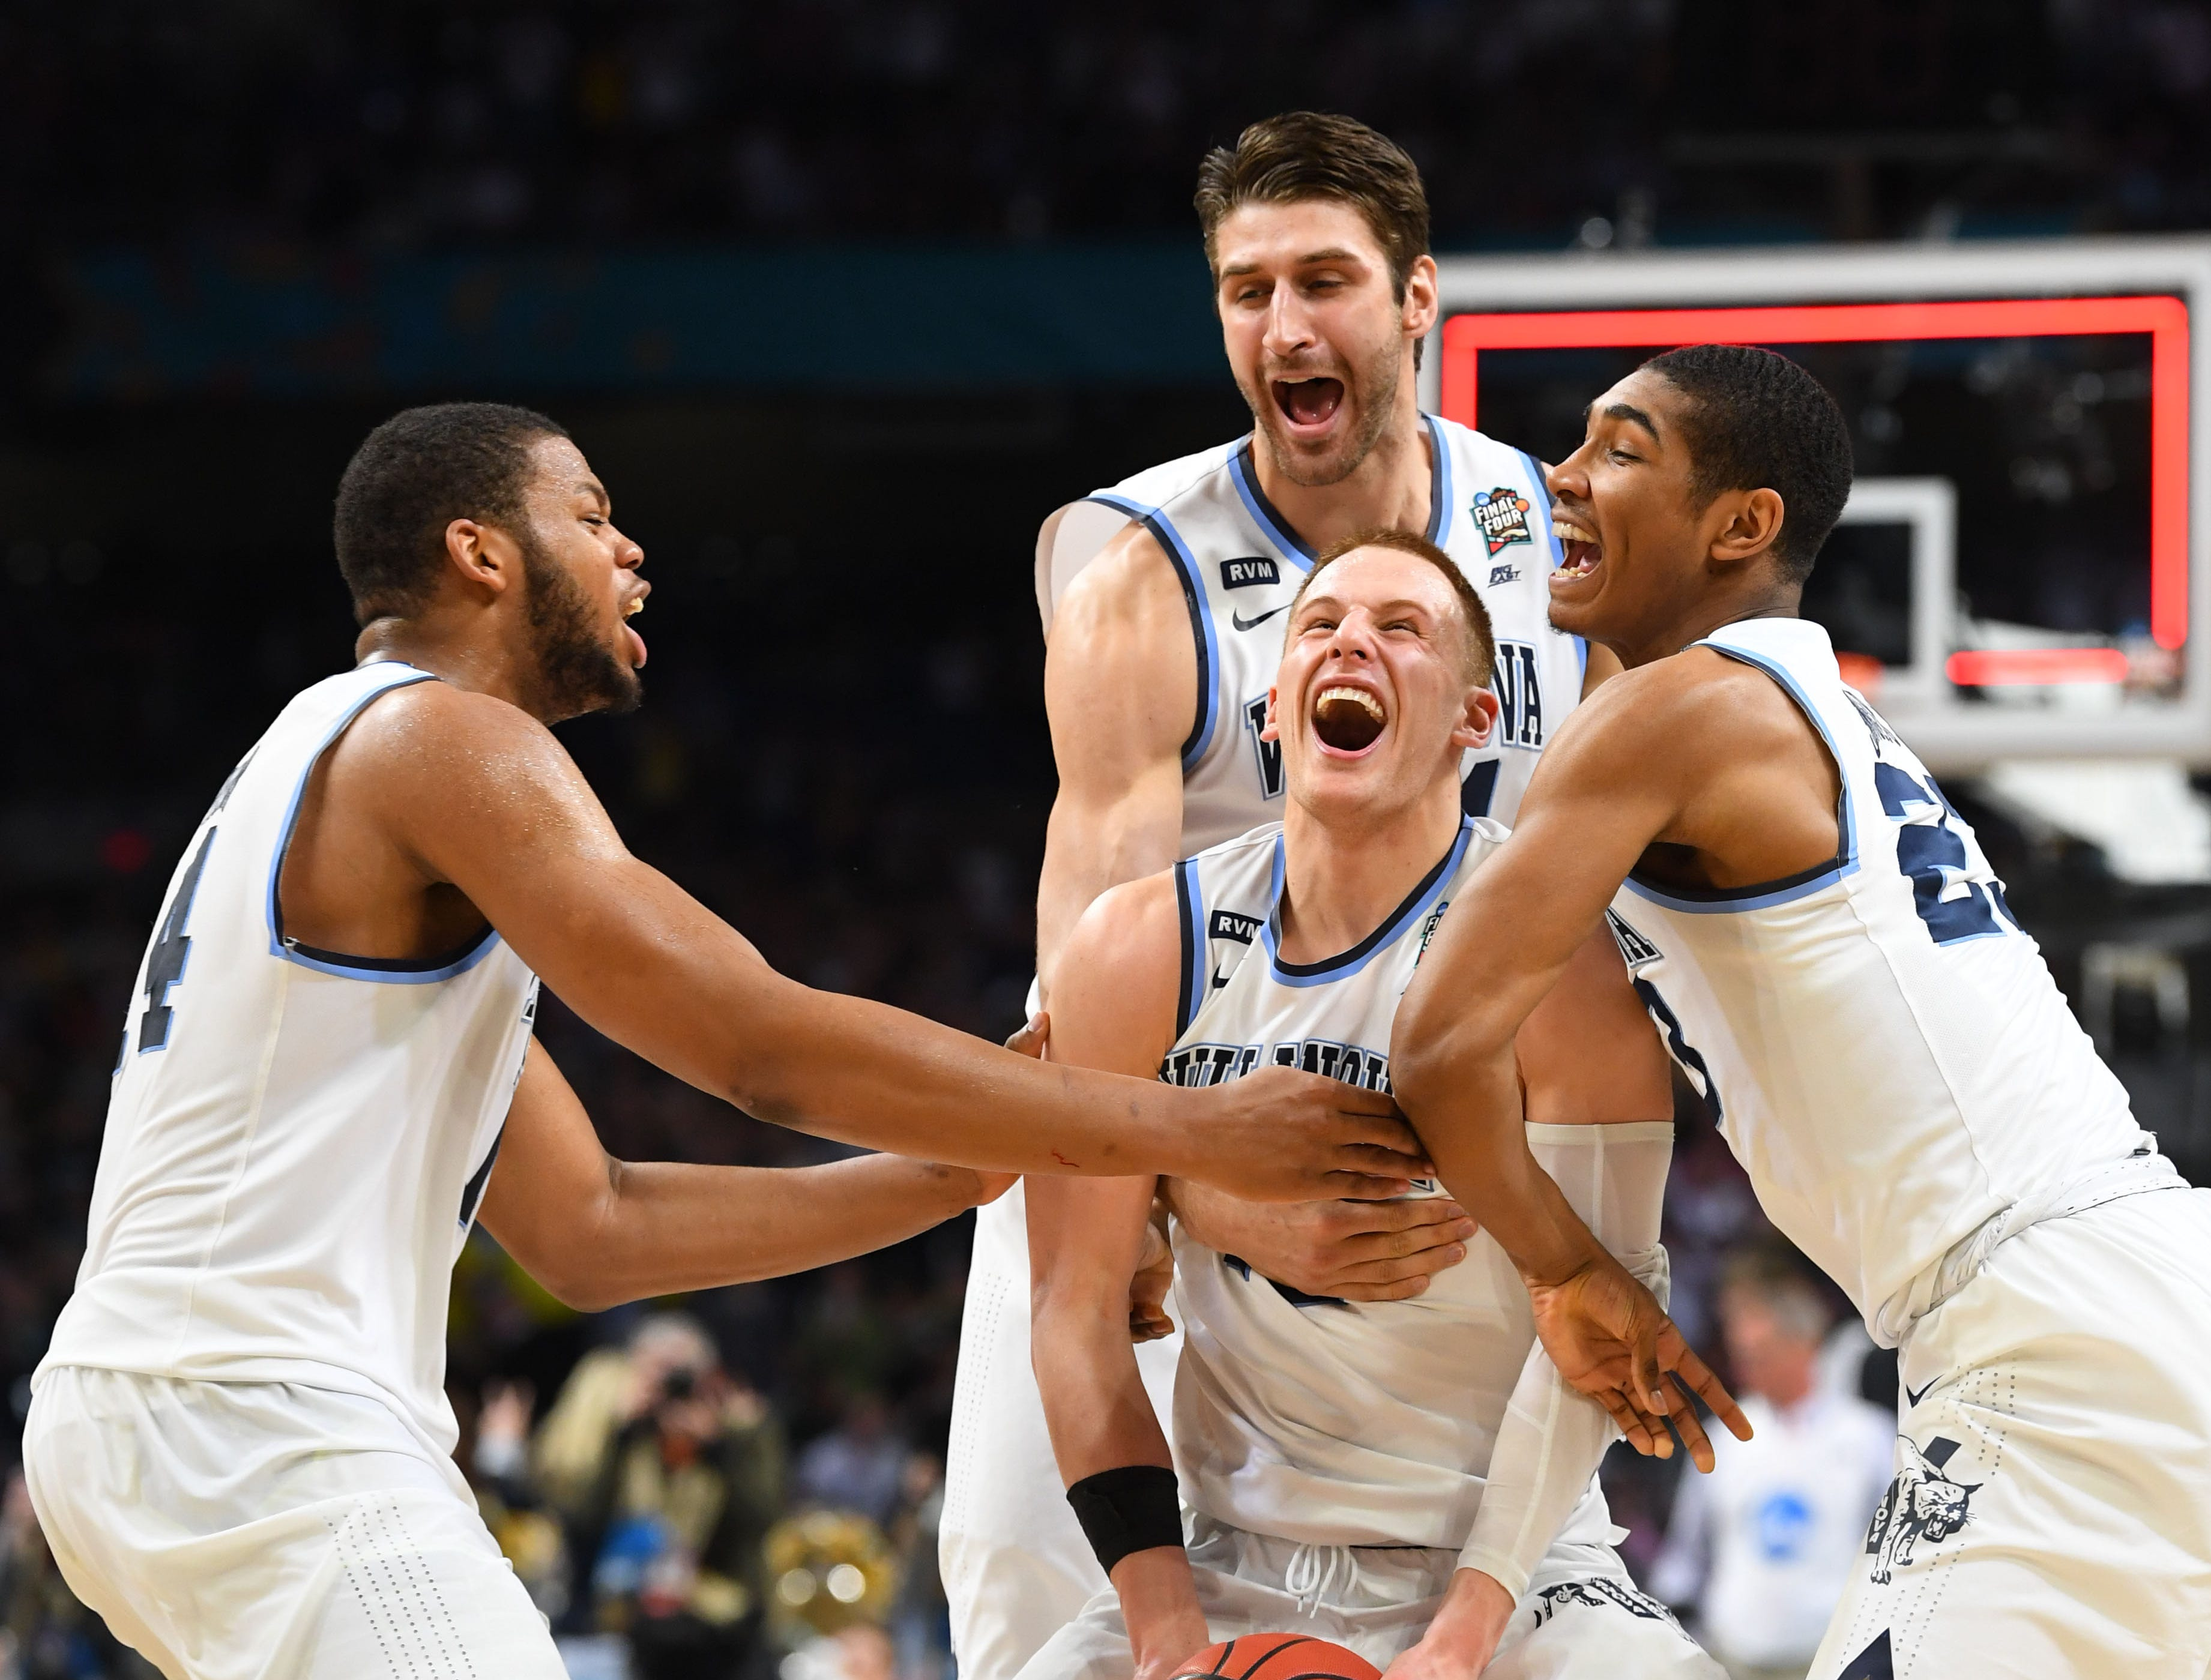 April 2: Donte DiVincenzo and the Villanova Wildcats celebrate after defeating the Michigan Wolverines in the national title game.